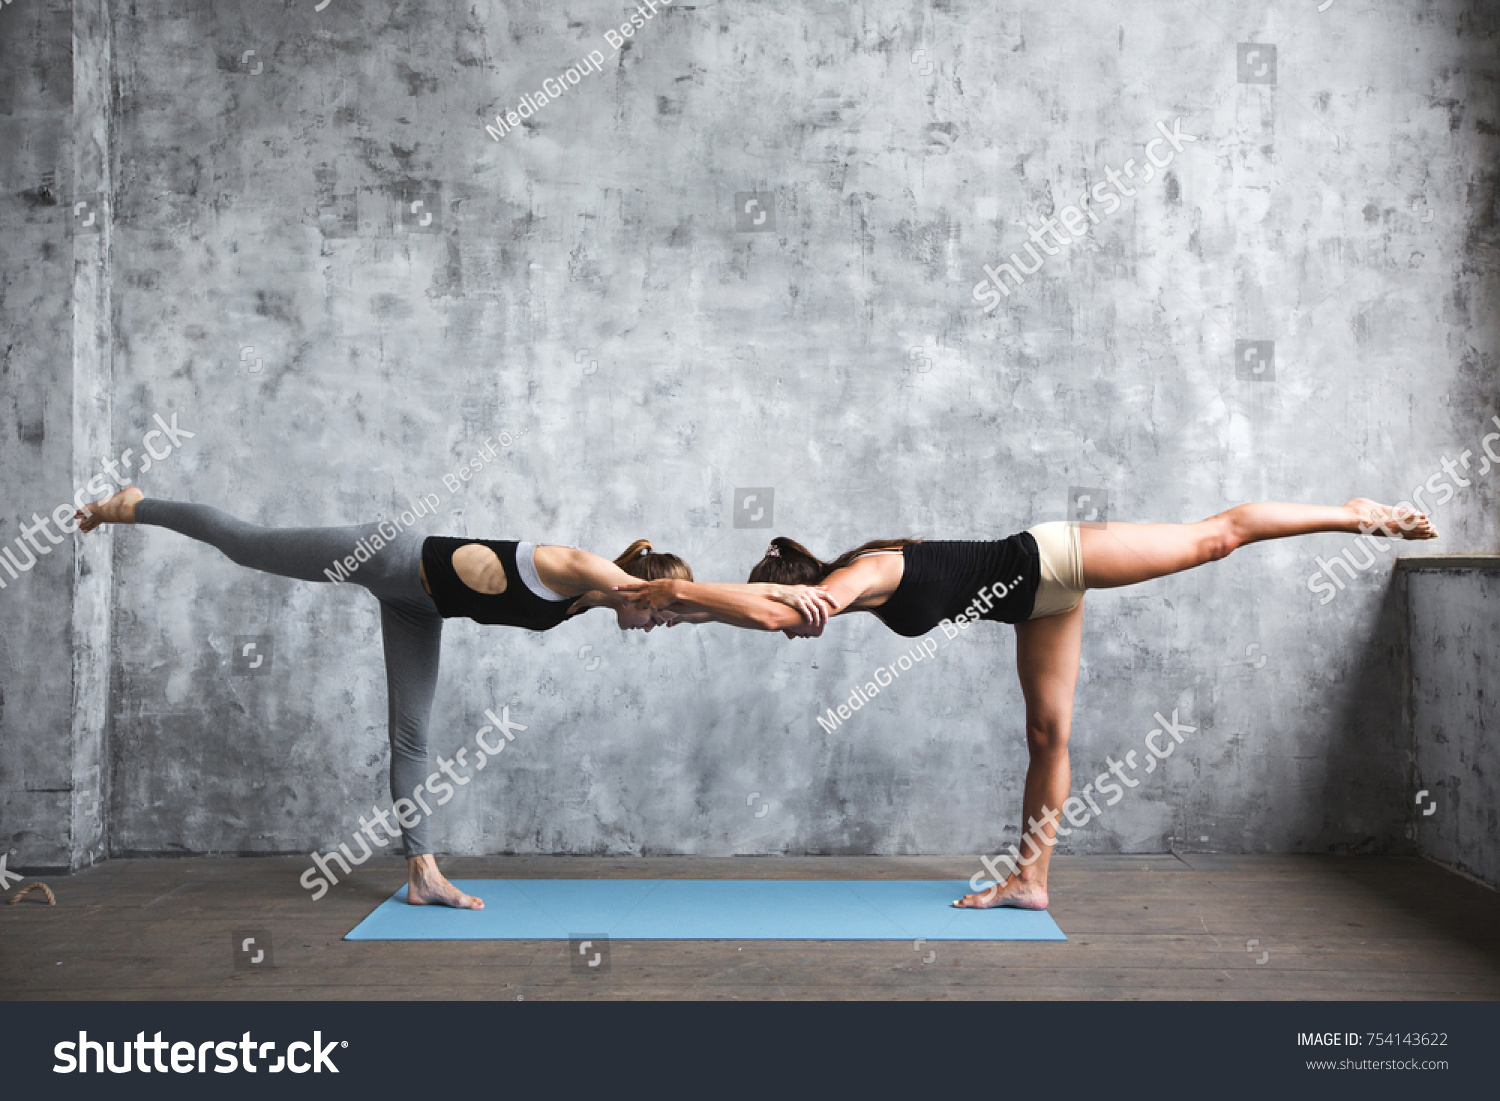 Yoga Two Young Women Practicing Yoga Stock Photo Edit Now 754143622